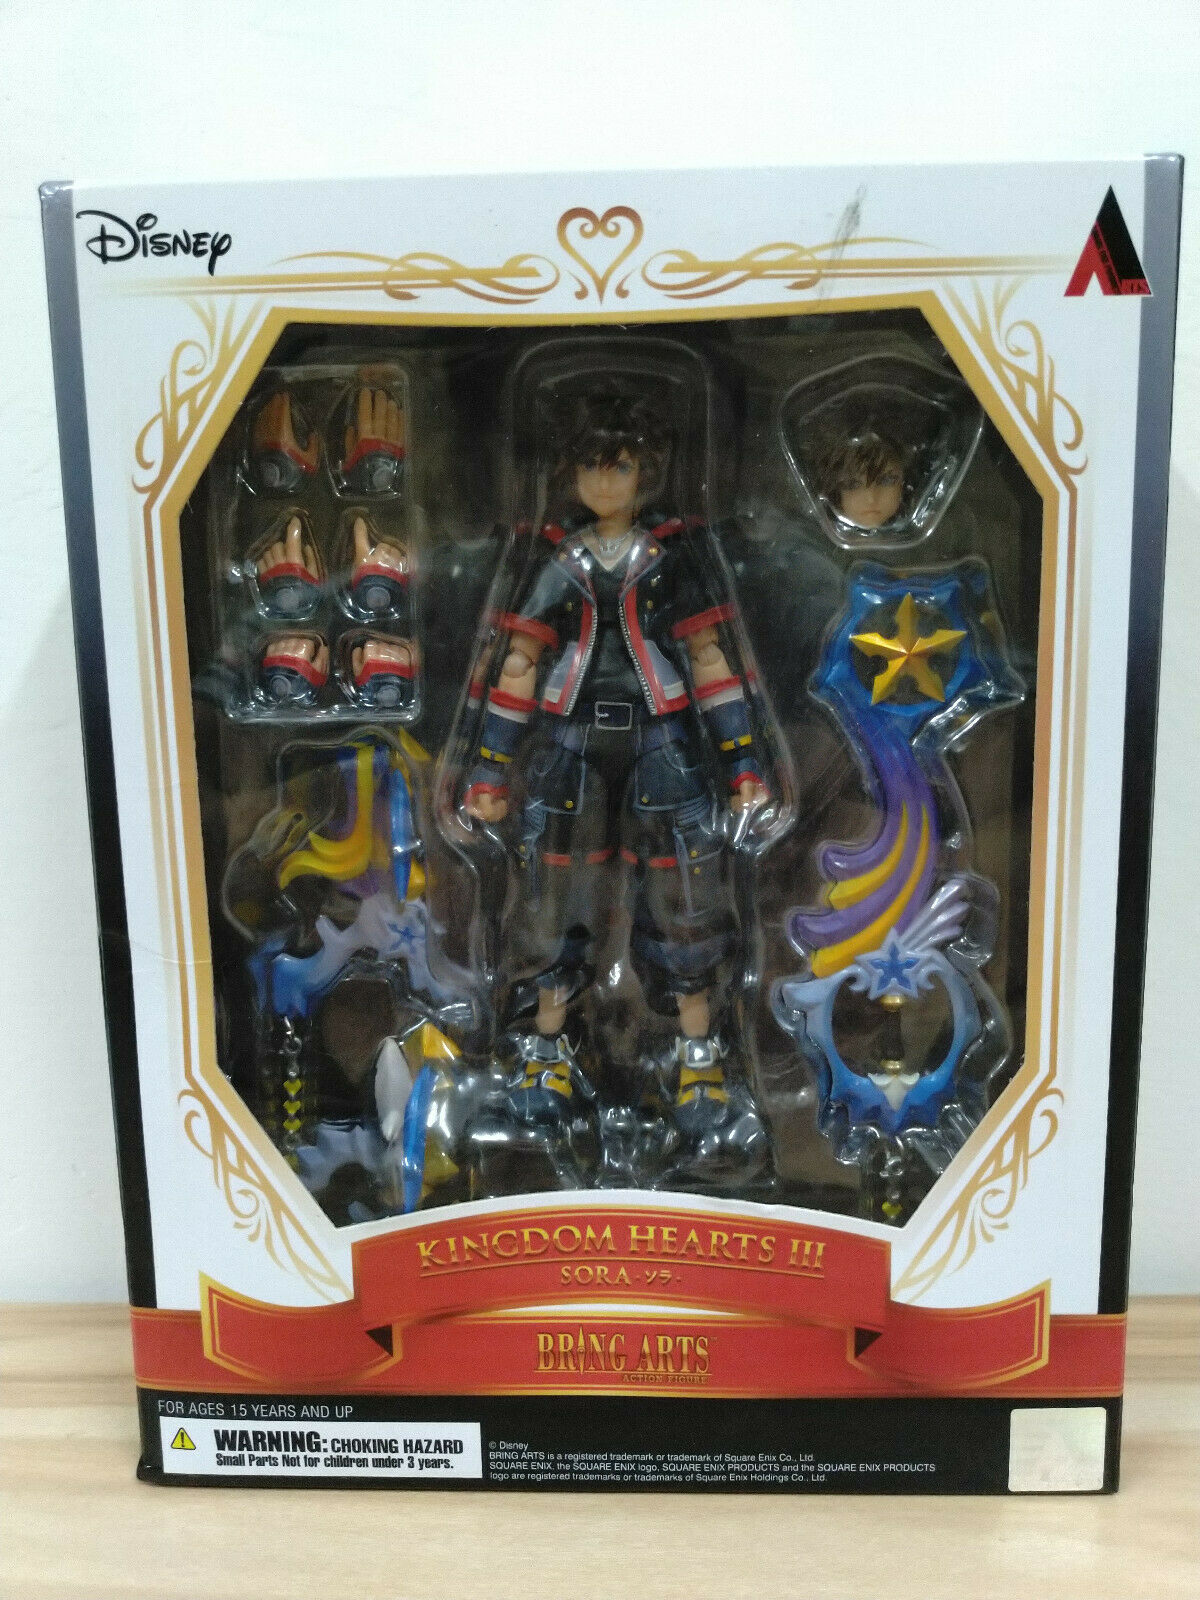 Official Square Enix Kingdom Hearts III Bring Arts Sora Action Figure